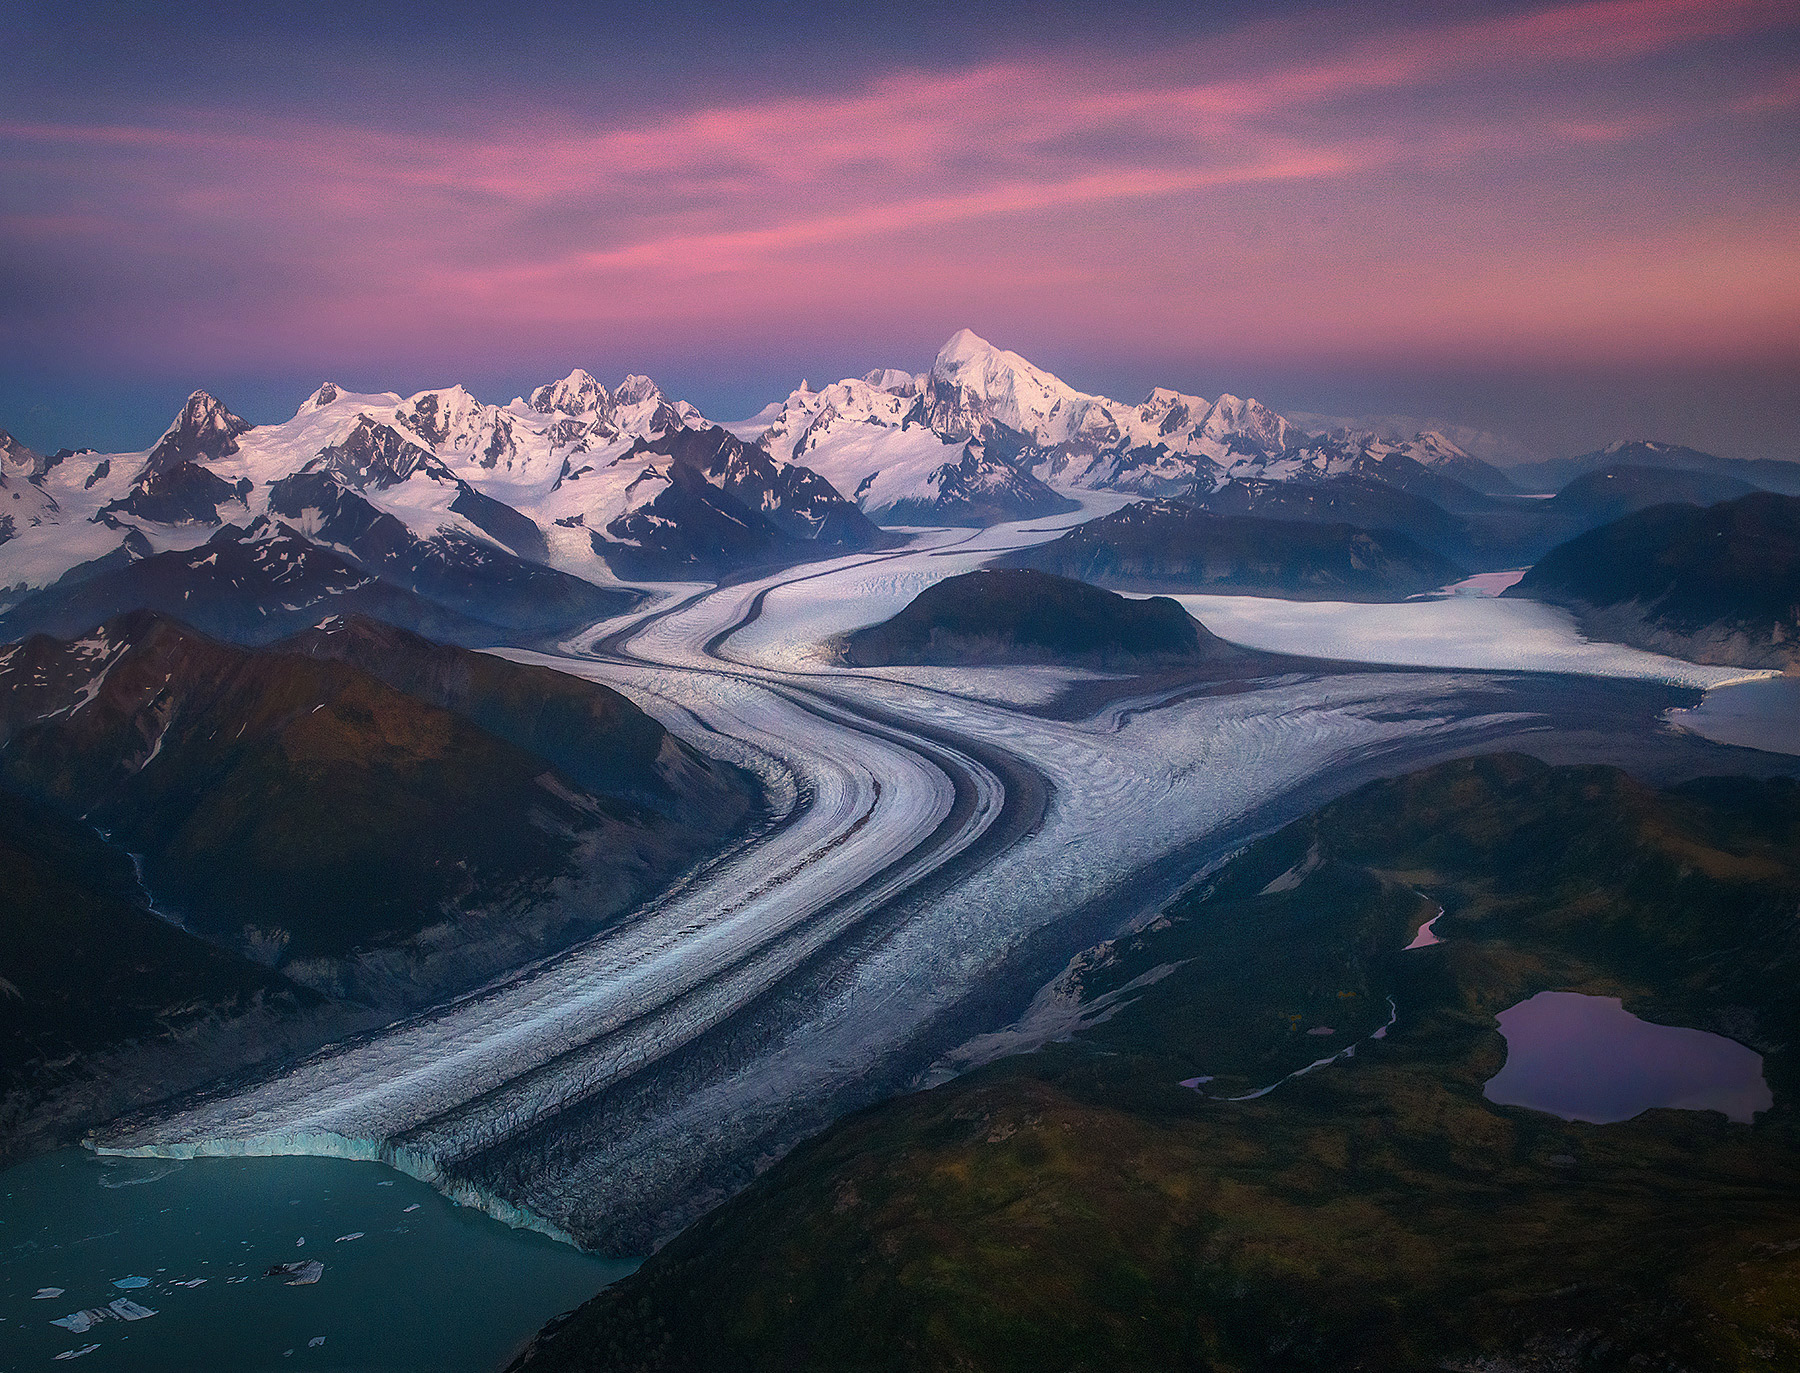 Enormous mountains and glaciers more than 20 miles long envelope an Alaskan landscape adorned with fall colors at twilight.